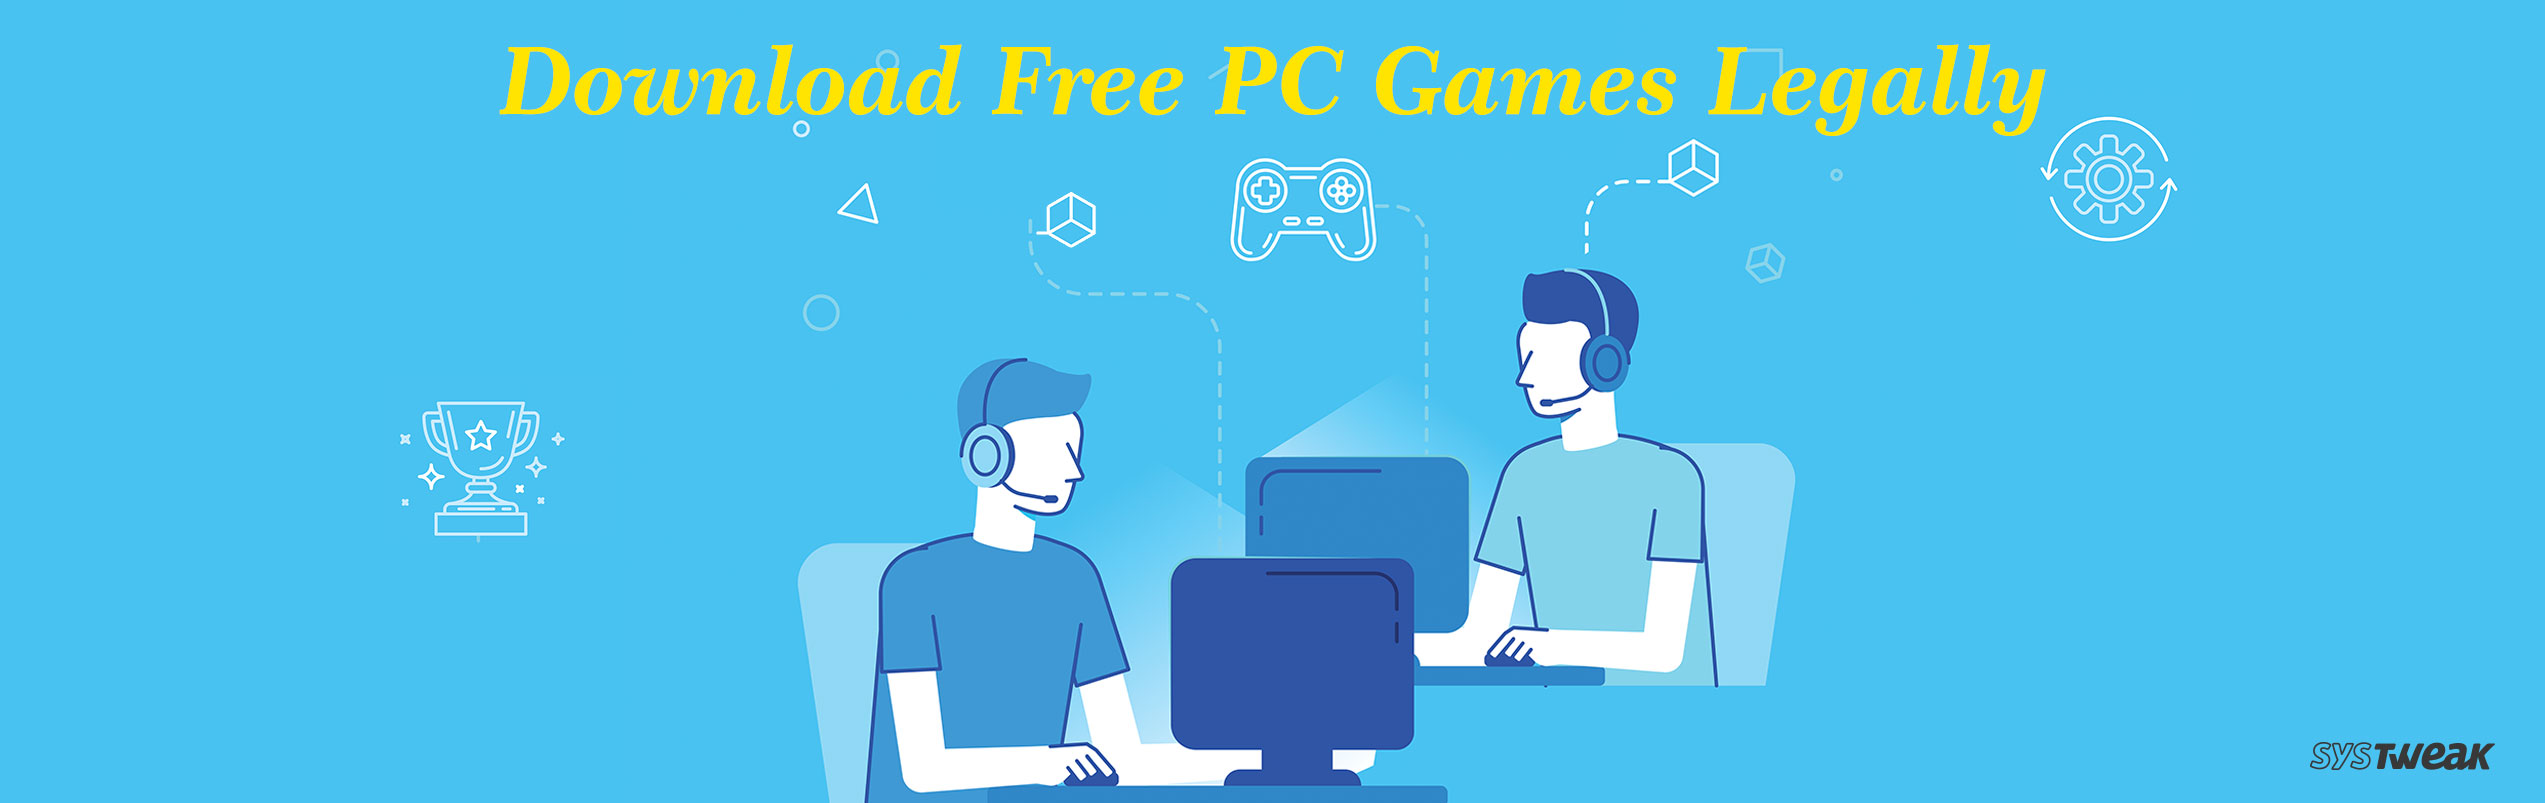 Best Websites To Download PC Games For Free And Legally